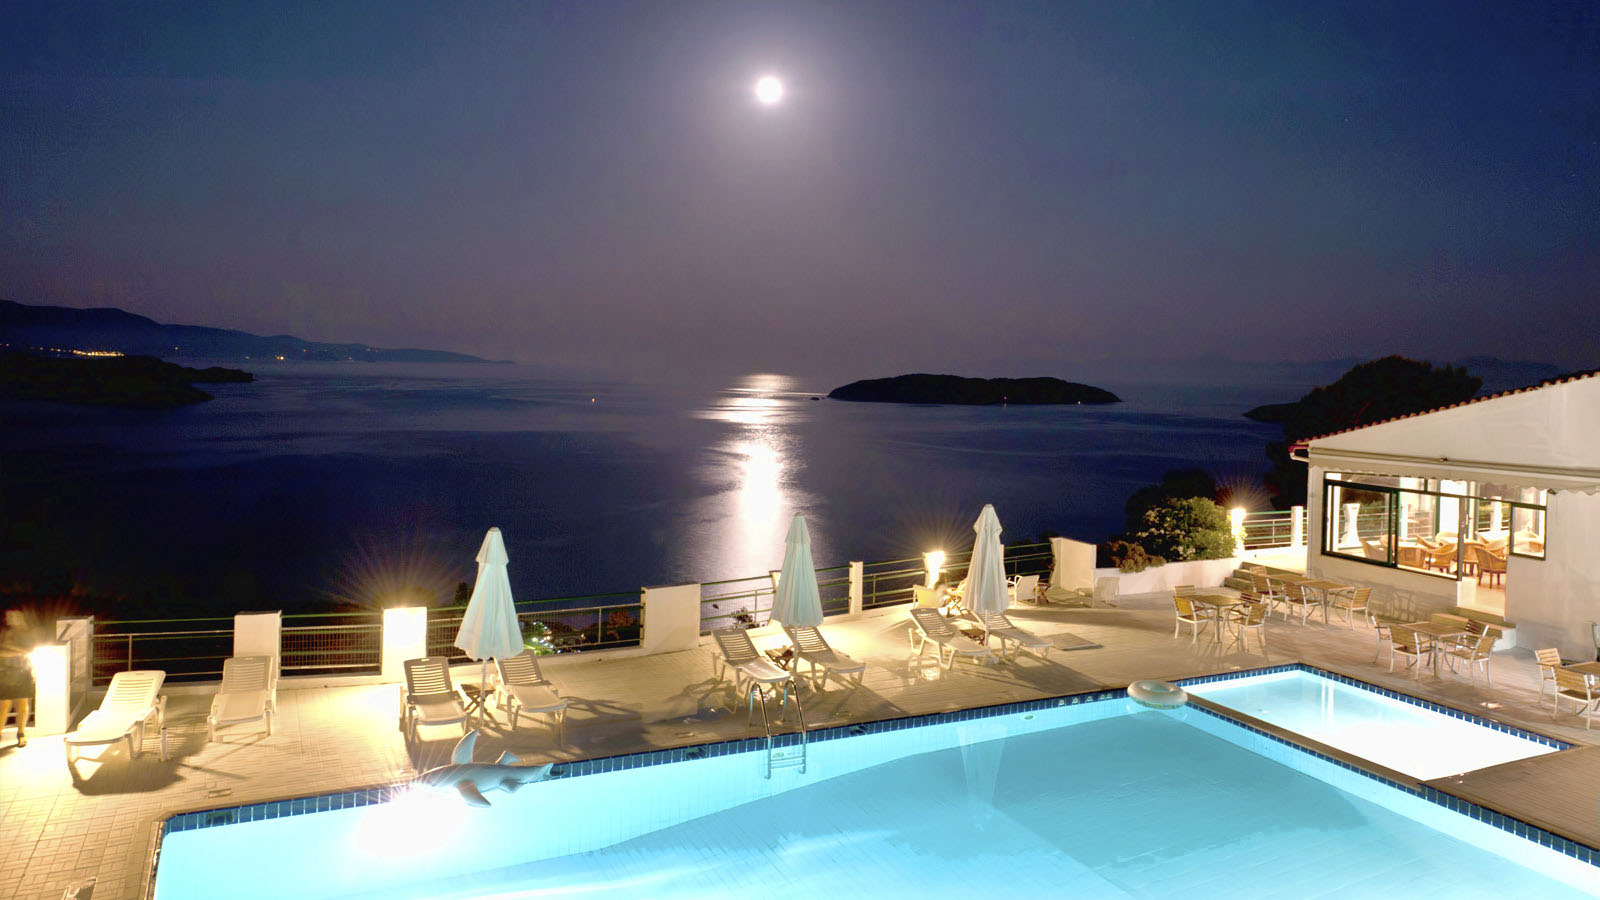 Skiathos club hotel and suites in skiathos island for Skiathos hotels